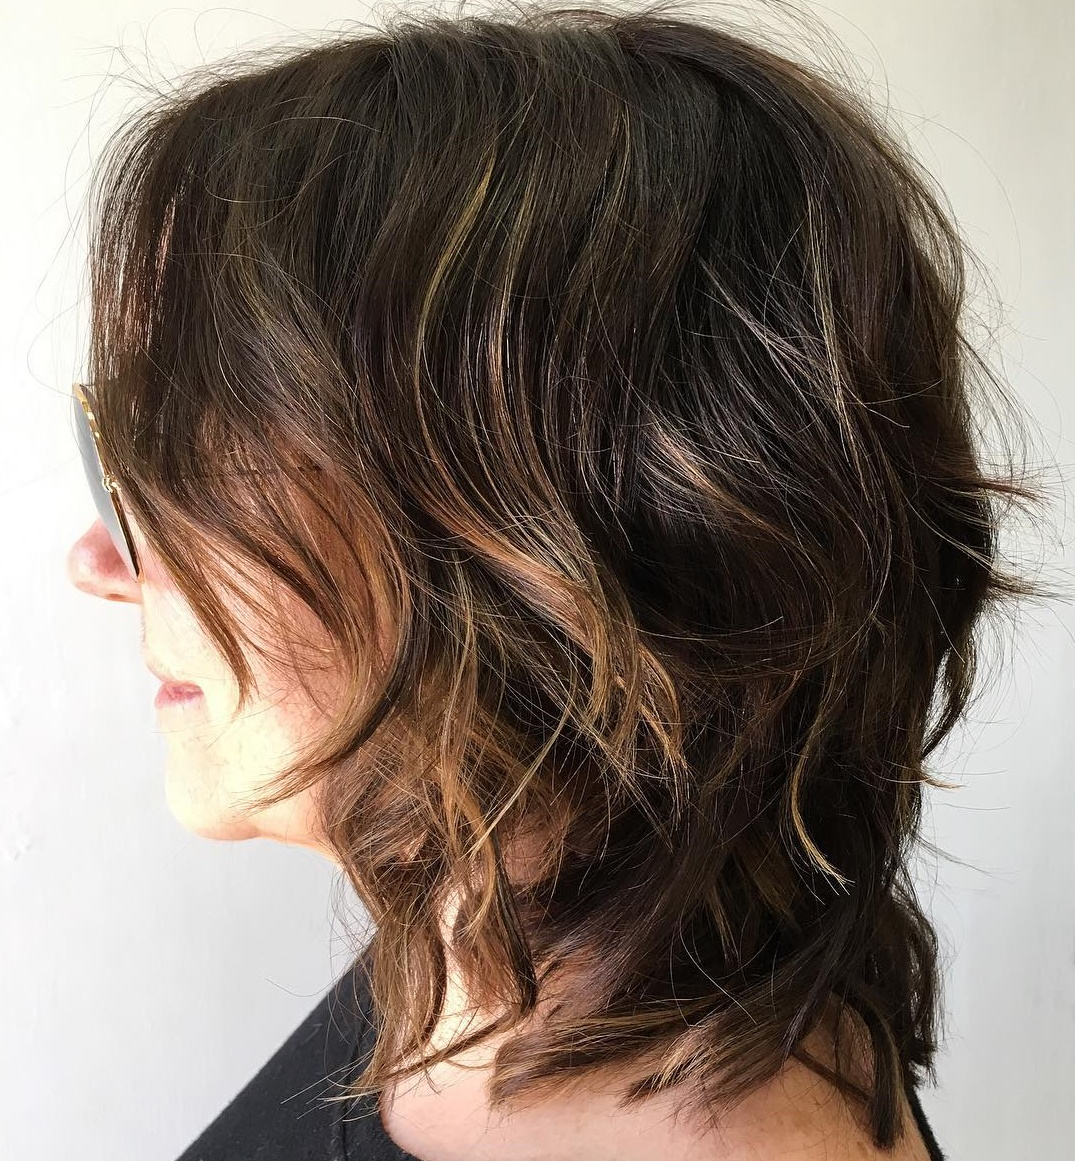 Dark Shaggy Layered Haircut with Auburn Highlights